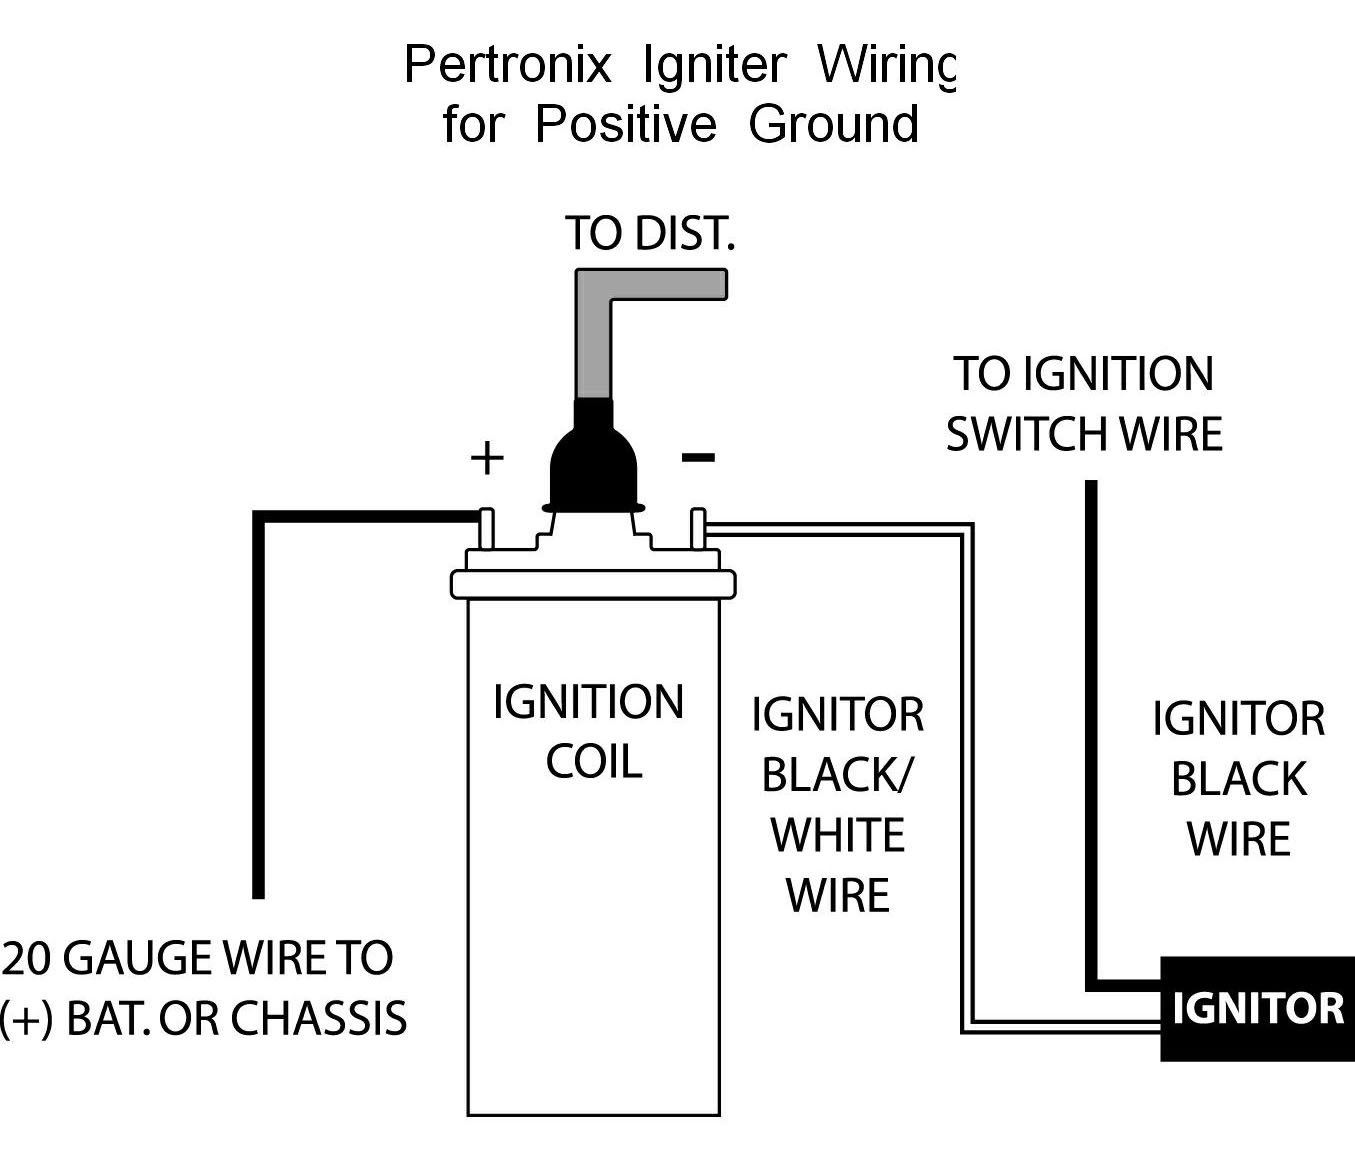 PerPosGndWiring pertronix positive ground wiring 12 volt coil wiring diagram at eliteediting.co